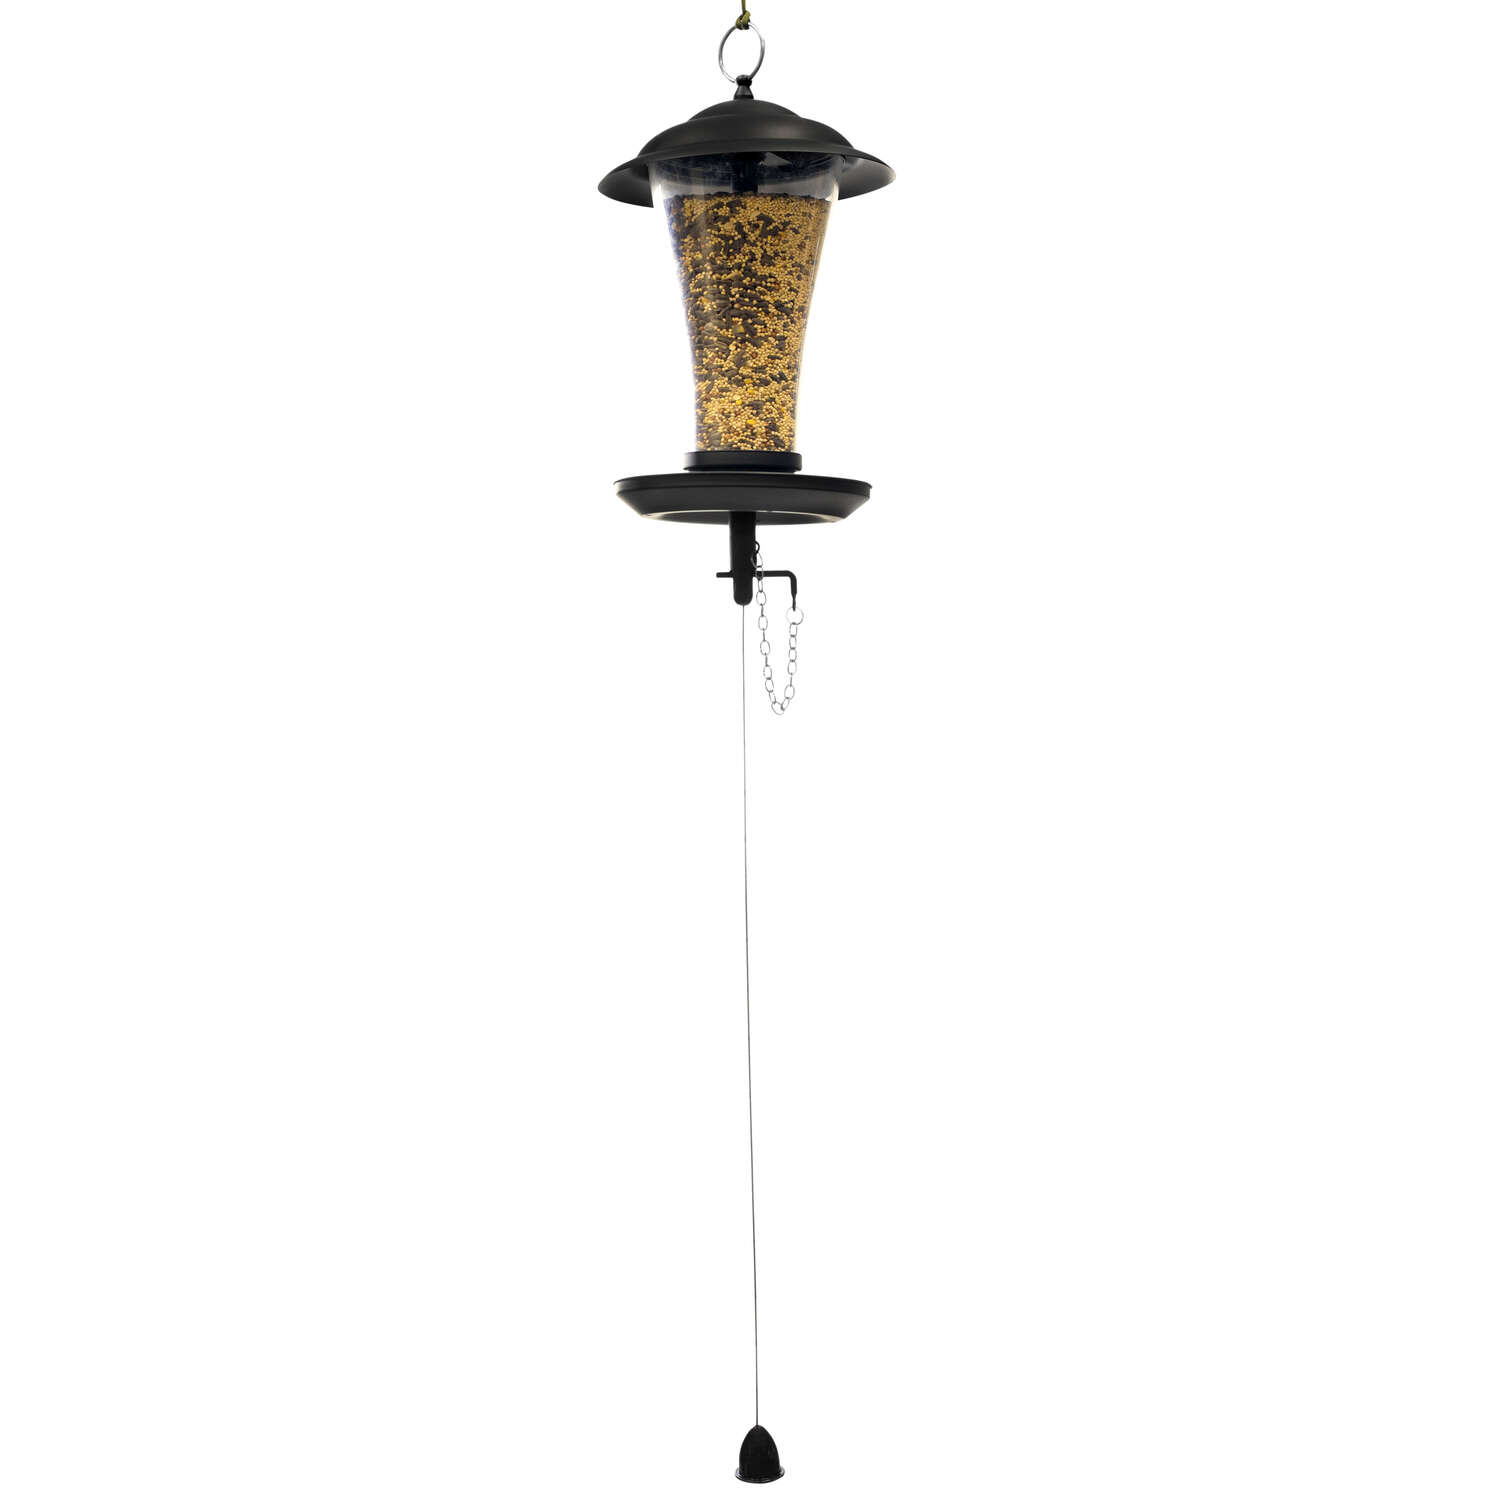 The Effortless Birdfeeder  3 lb. Plastic  Hanging  Bird Feeder